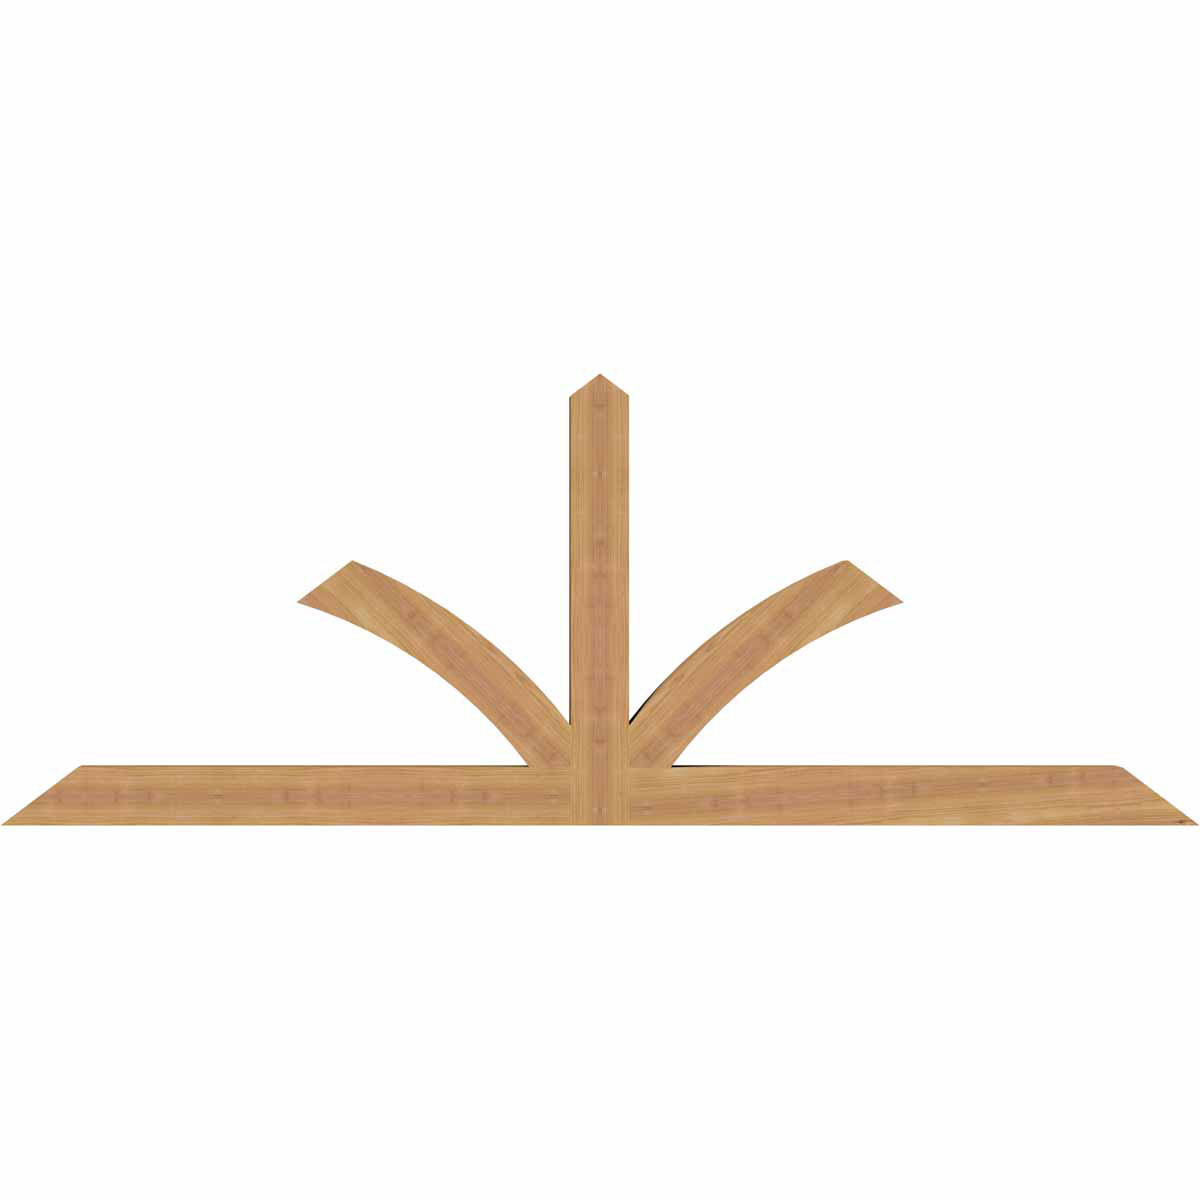 Richland smooth timber gable bracketwestern red cedar for Cedar gable brackets